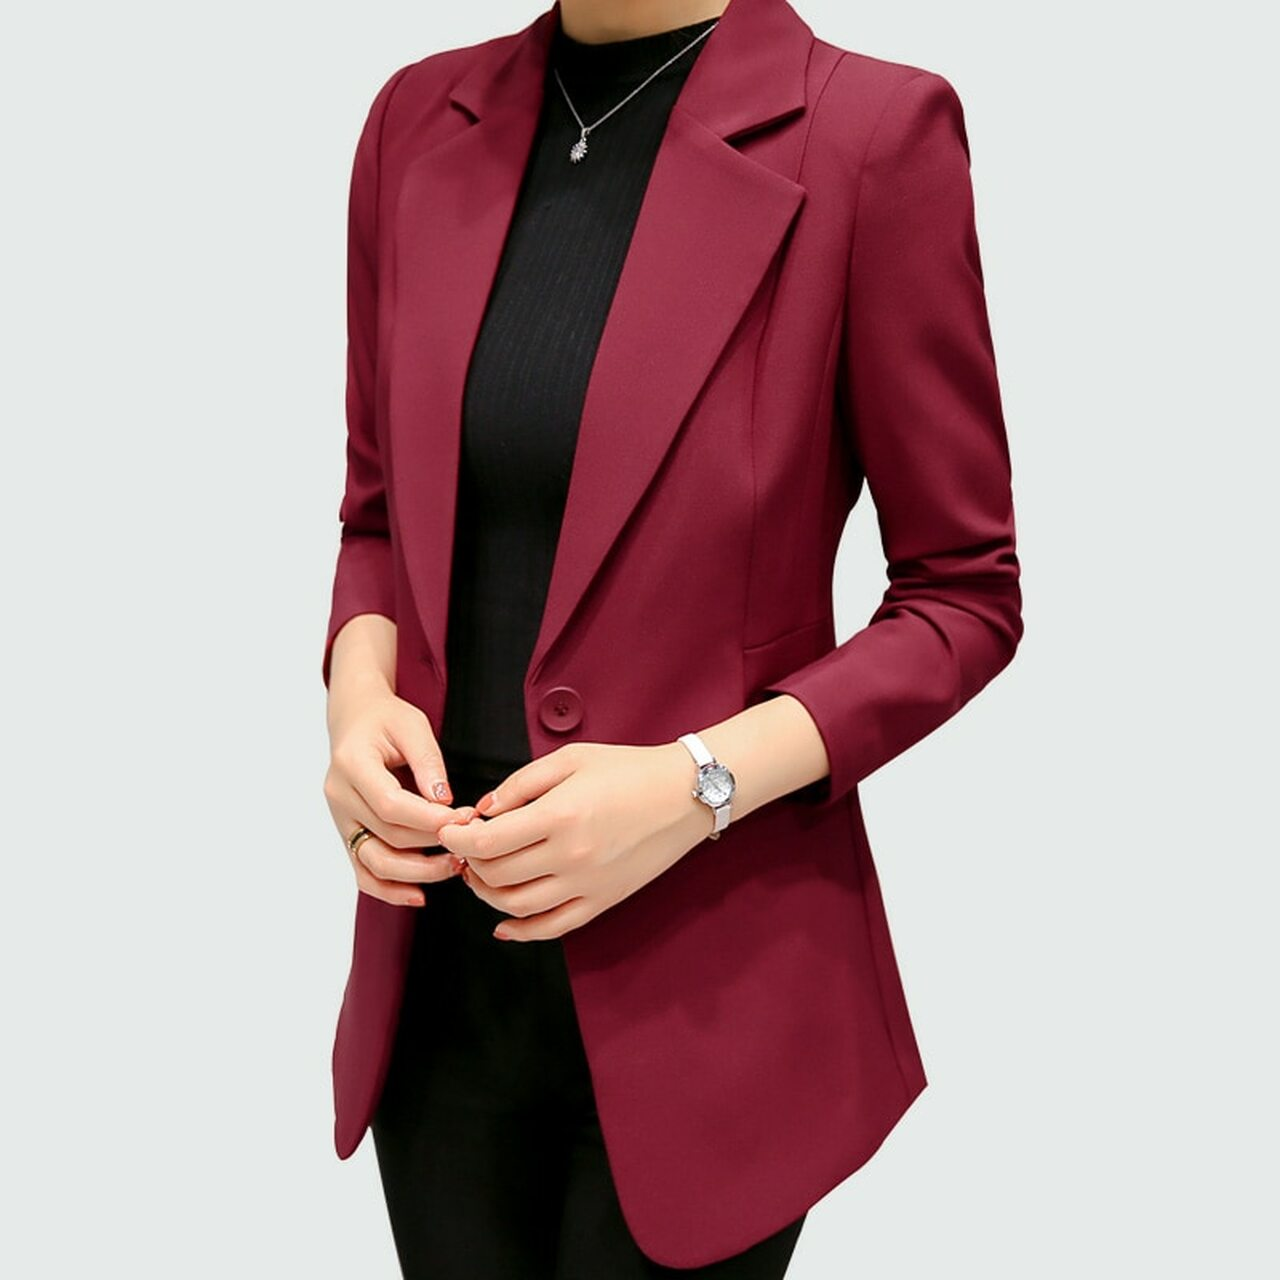 c00624850d2 ... Vangull Women Blazers Jackets 2018 New brand Spring Autumn Fashion  Single Button Elegant Blazer Femenino Ladies ...